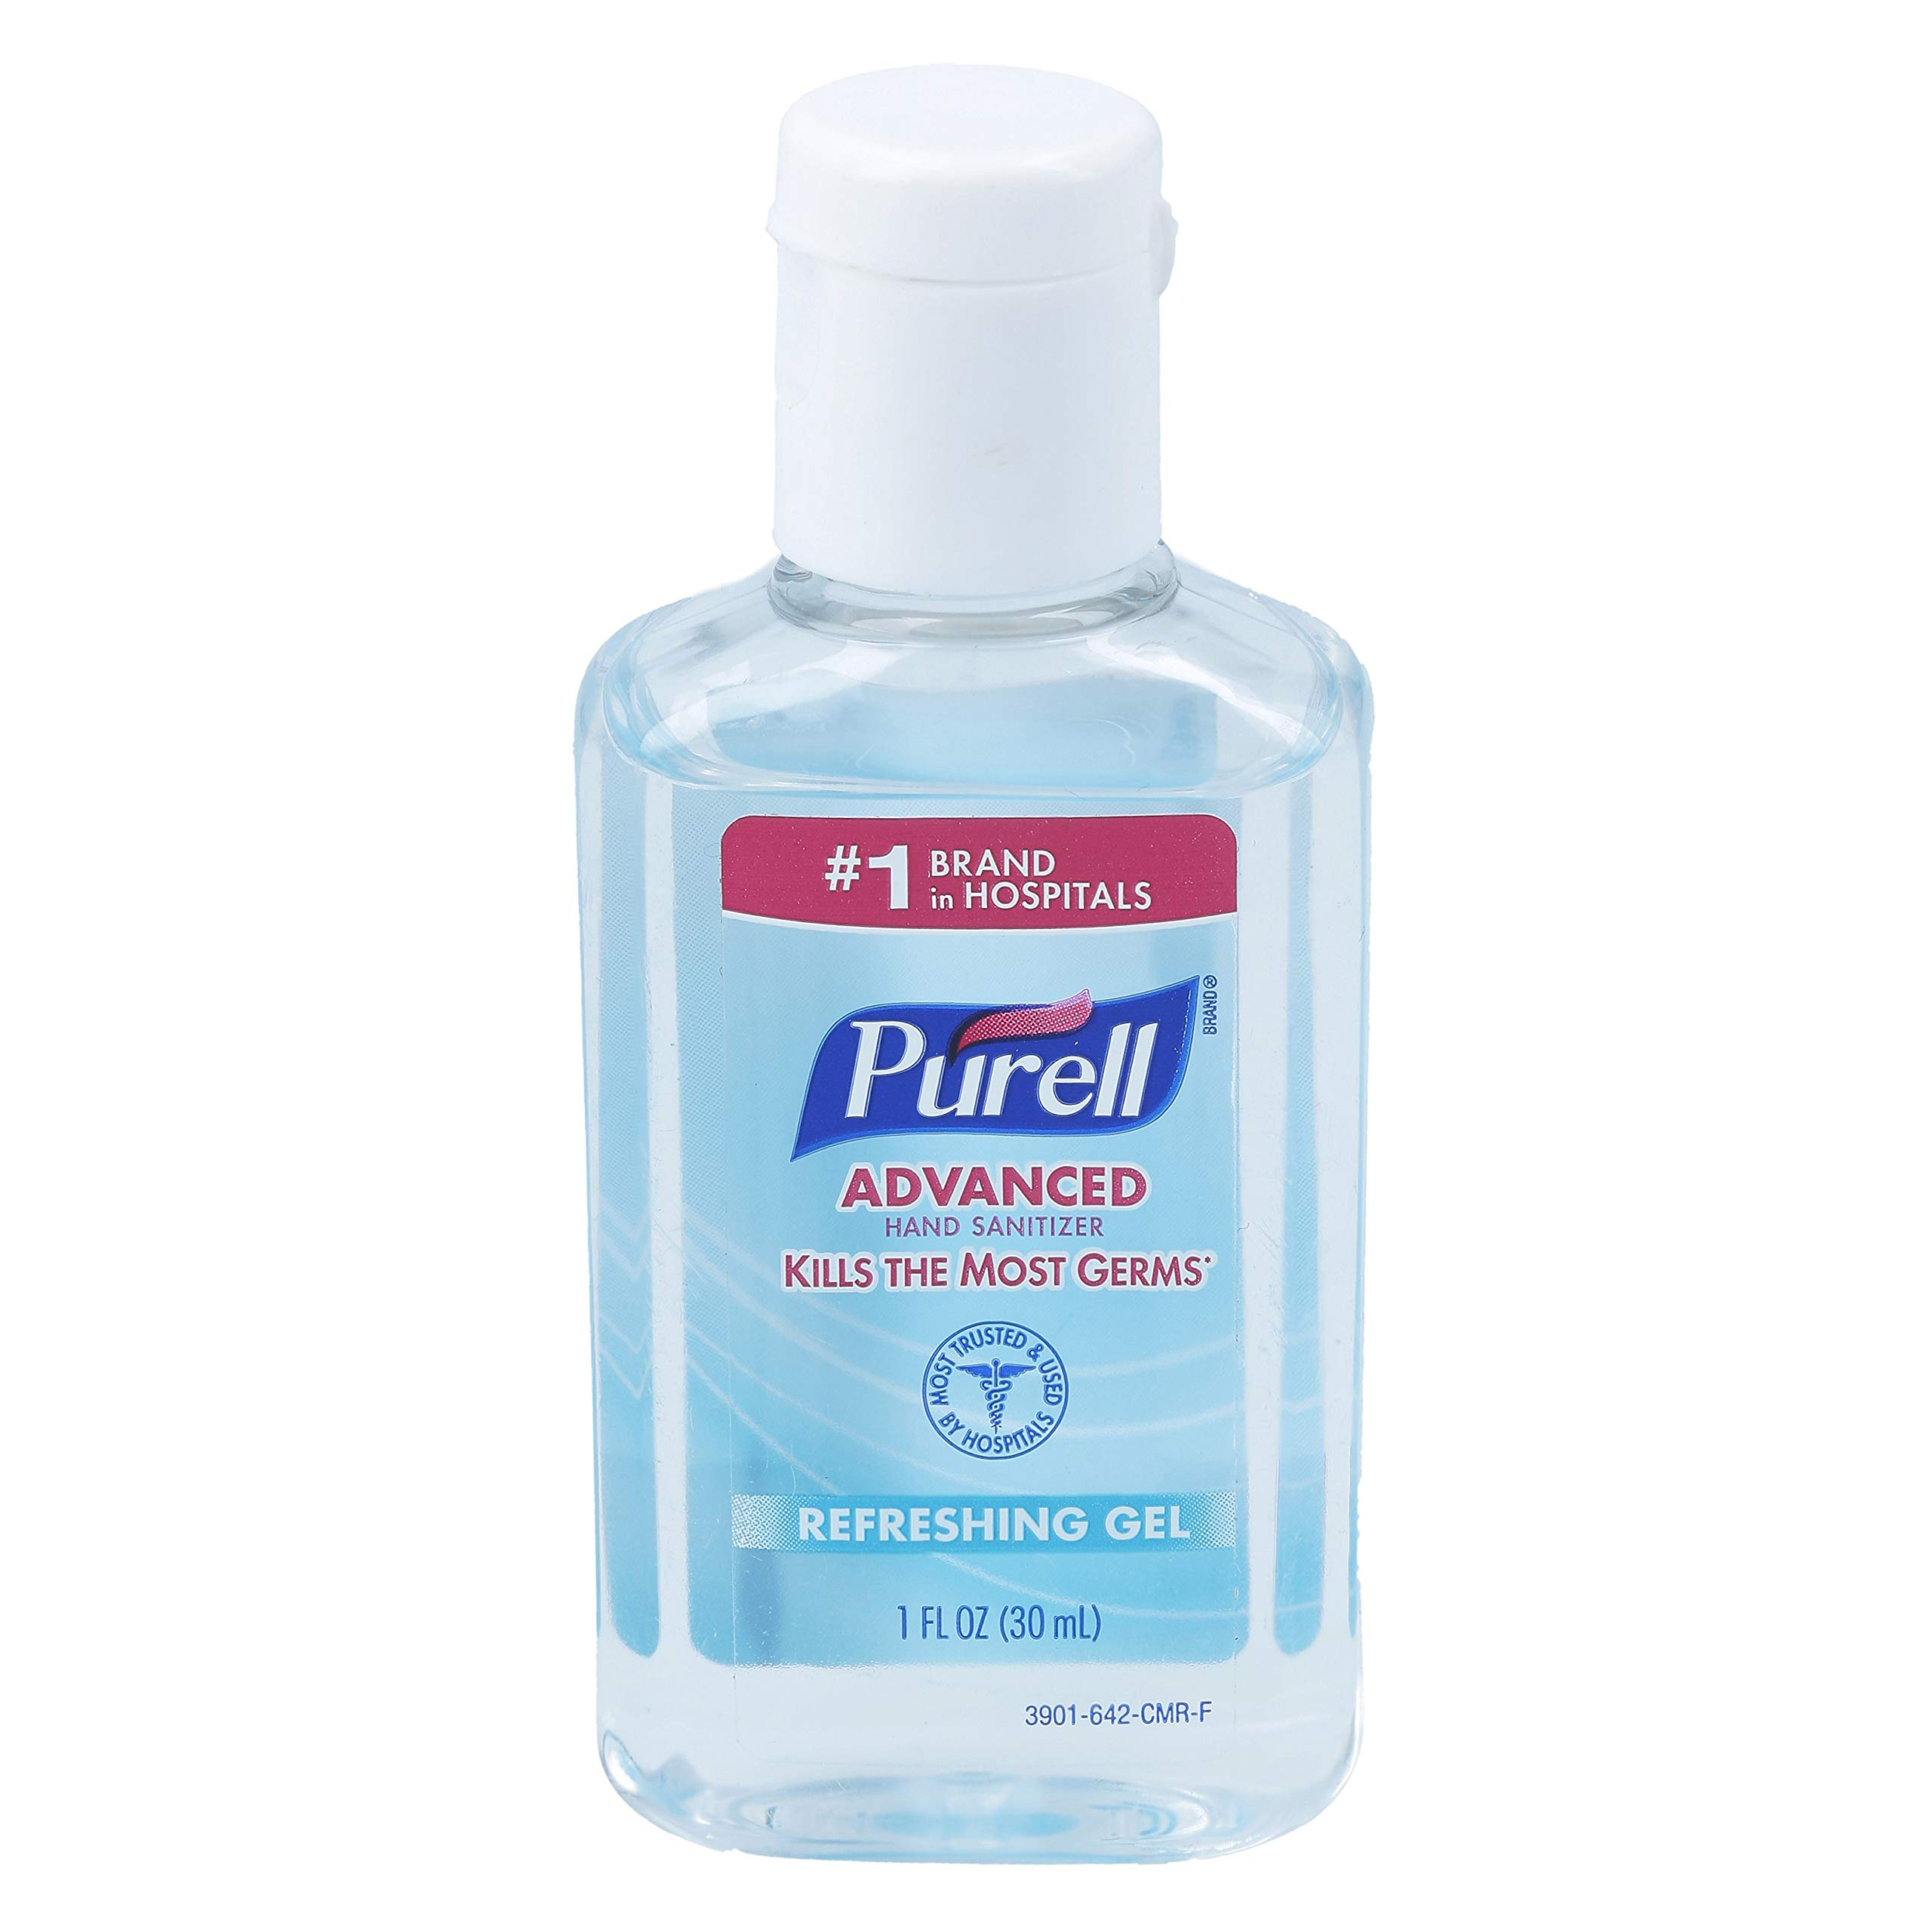 Purell Hand Sanitizer Jelly Wrap Bowl 30 Ml Price In Uae